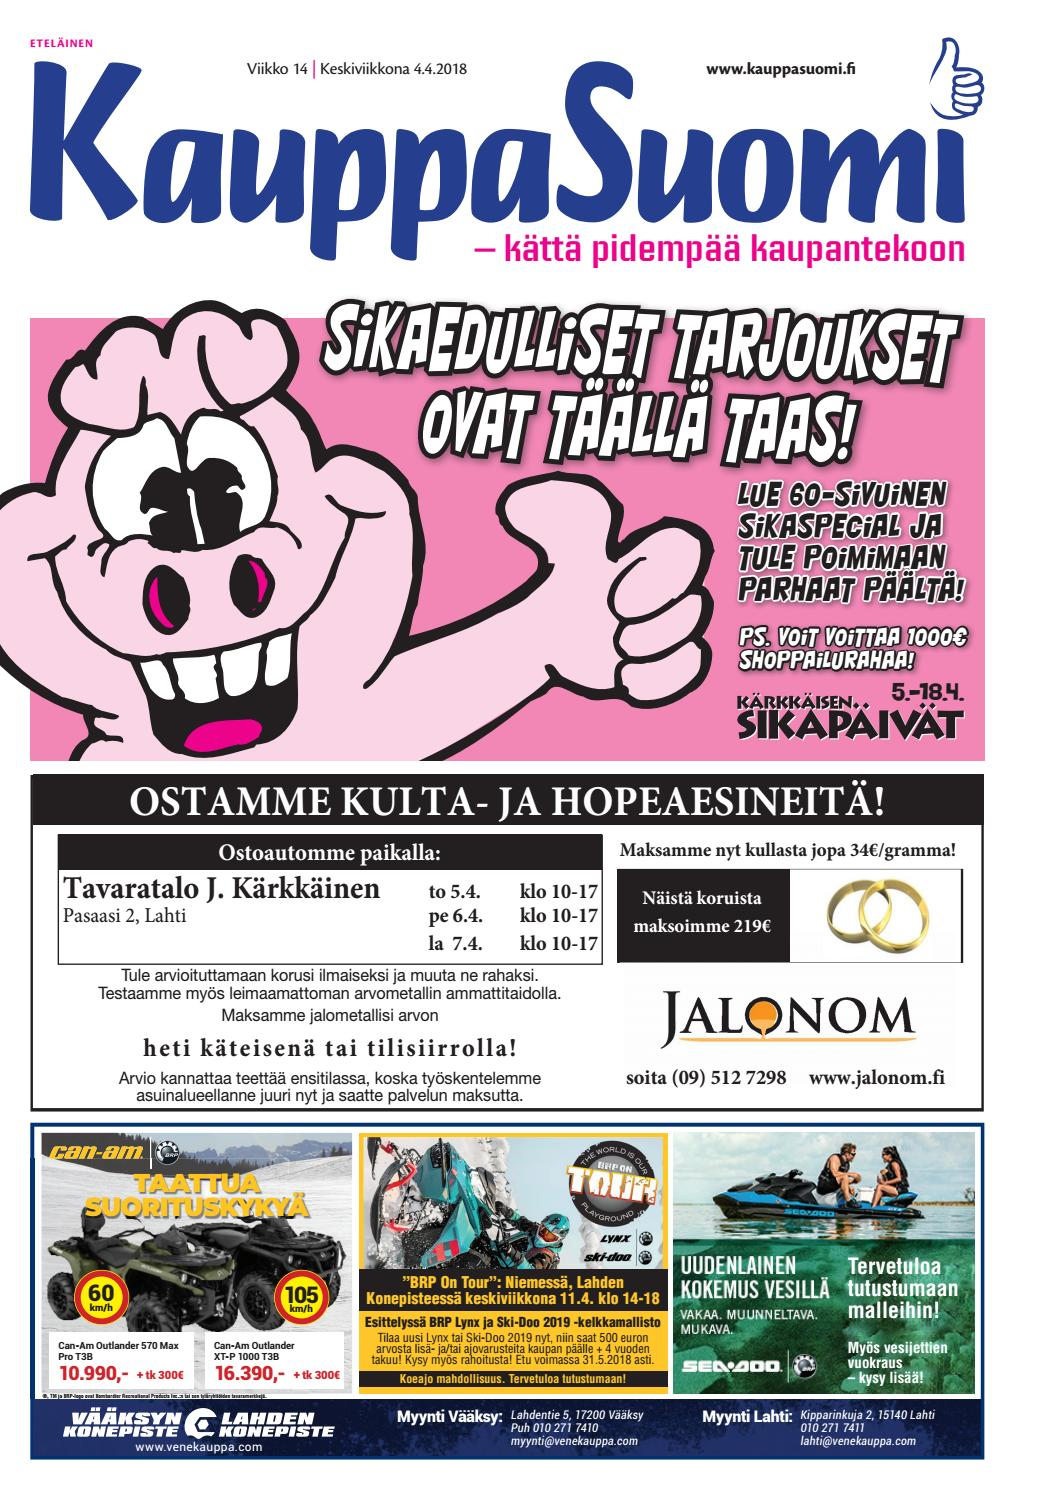 KauppaSuomi 14 2018 (E) by KauppaSuomi - issuu 427396bf04